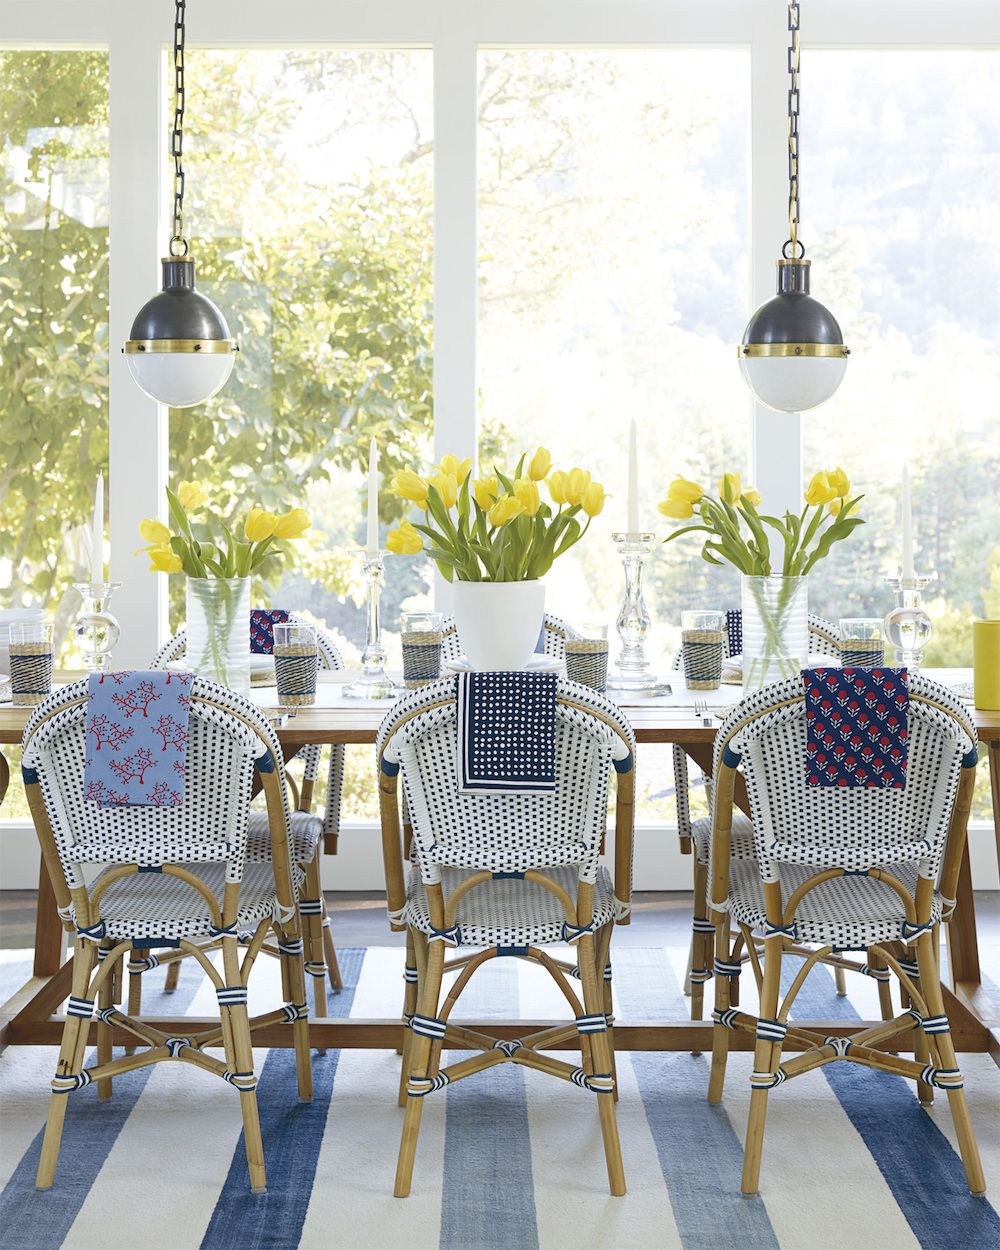 12 Darling French Bistro Chairs For Your Home! | Decoraciones de ...